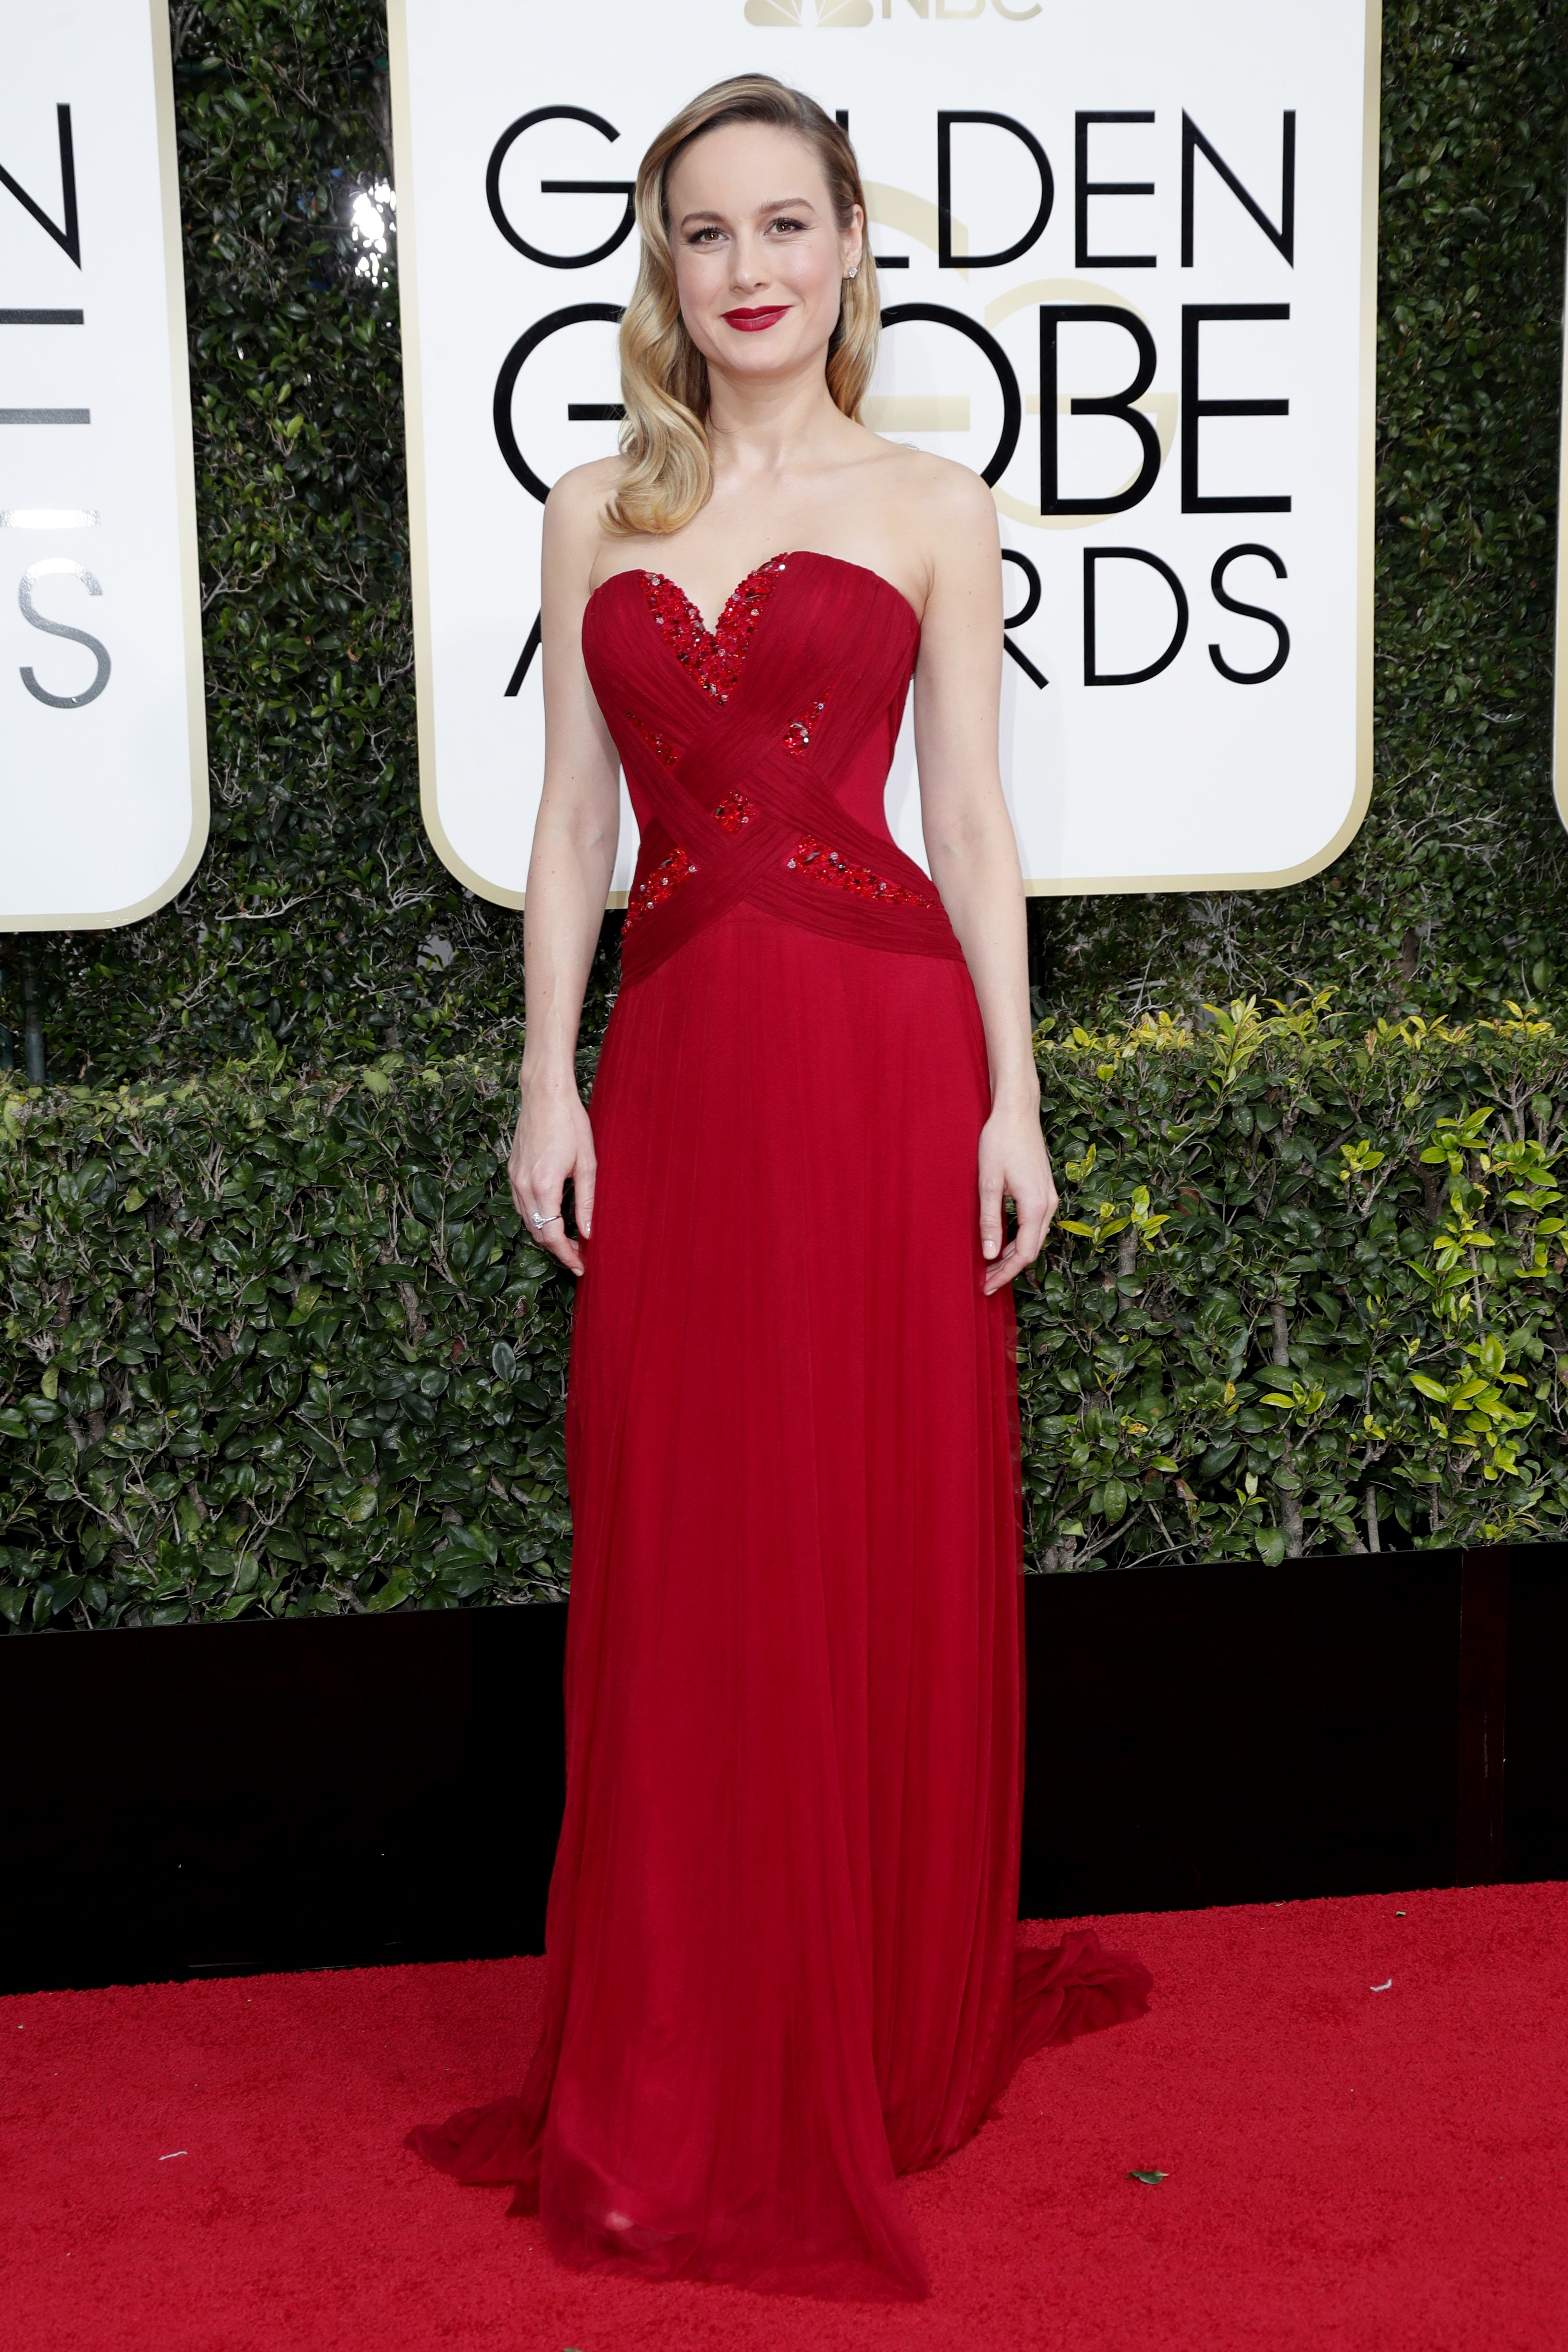 Brie Larson, Golden Globes. Mandatory Credit: Photo by Jim Smeal/BEI/Shutterstock